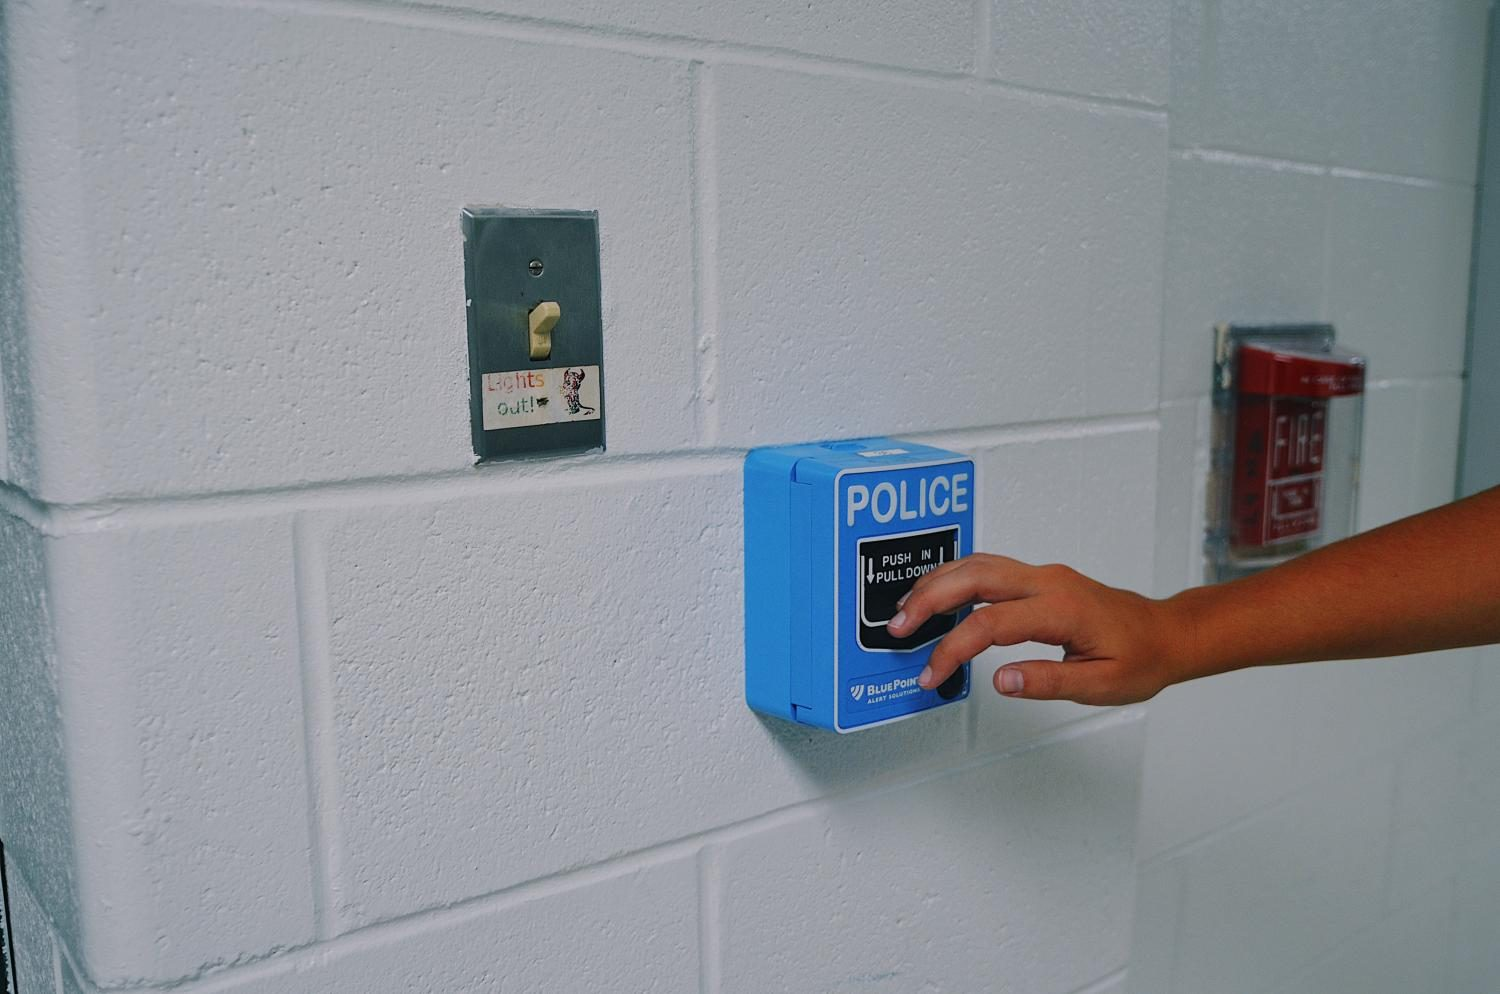 Students+are+now+able+to+easily+pull+a+lever+for+the+police+to+arrive+at+school.